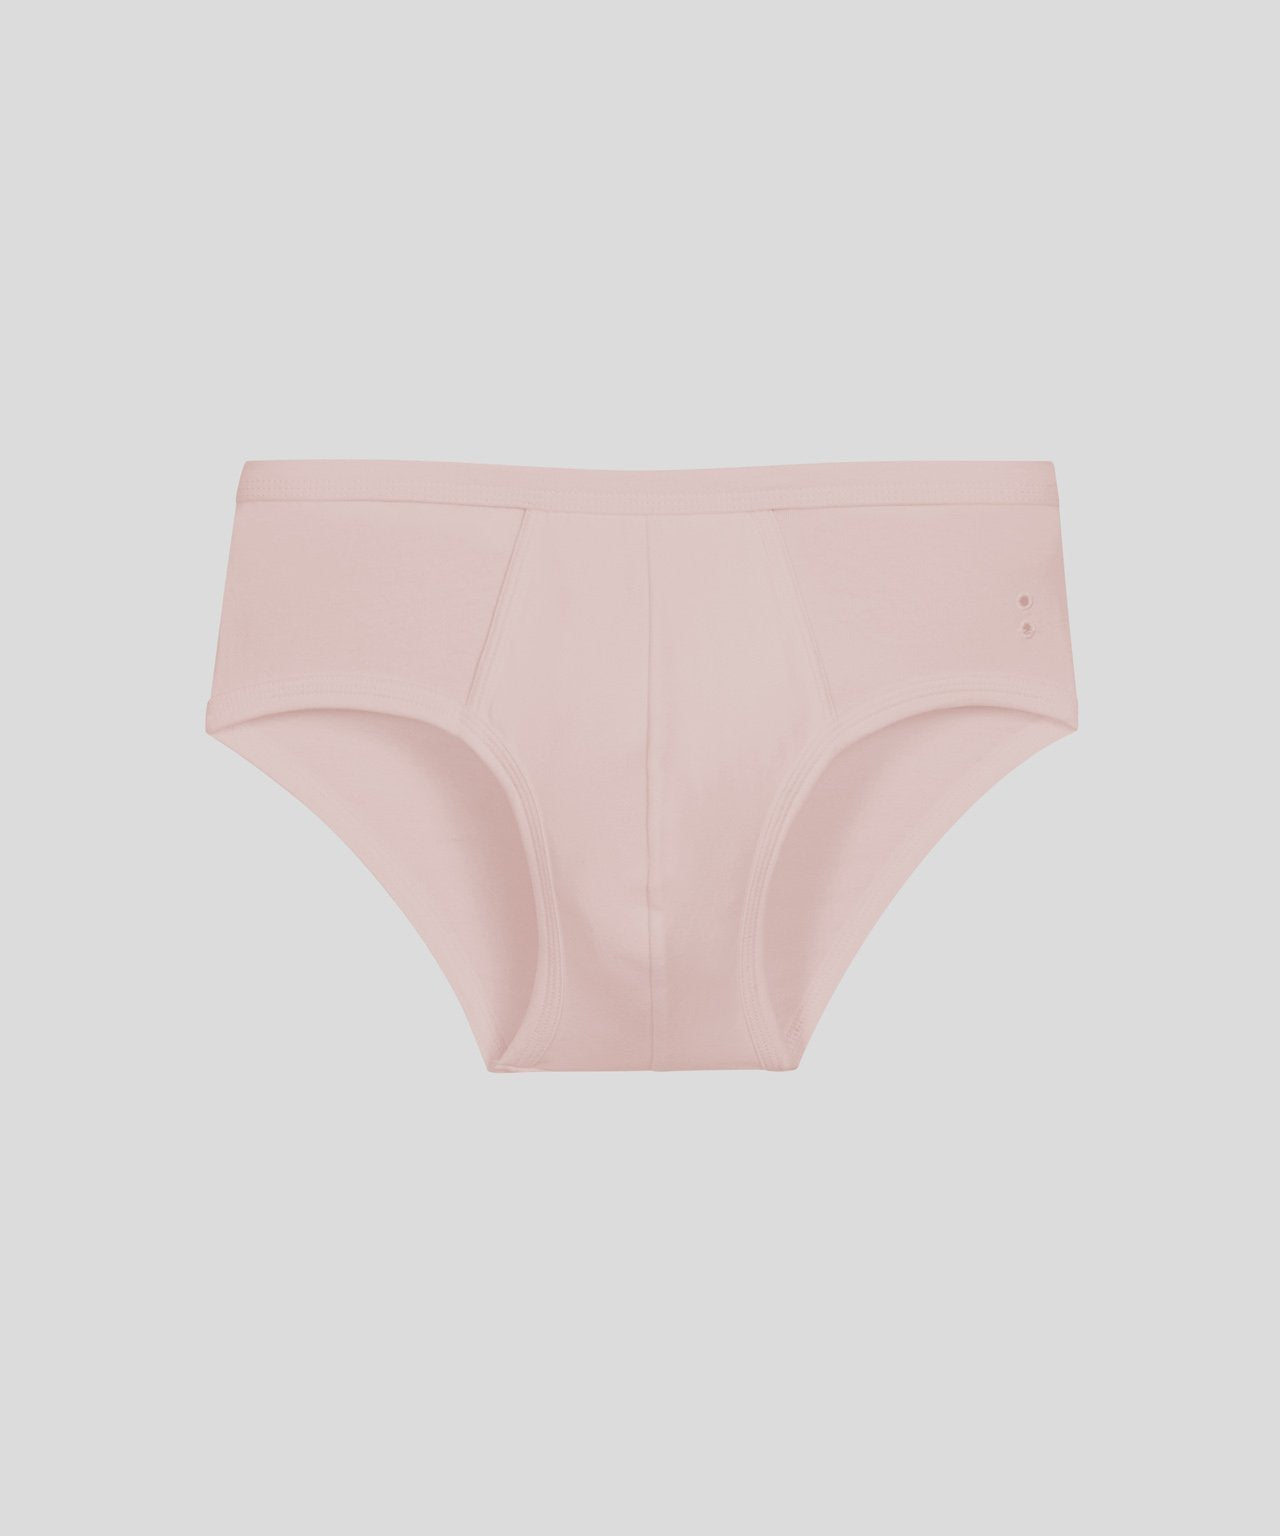 747 Y-Front Briefs Kit - pink